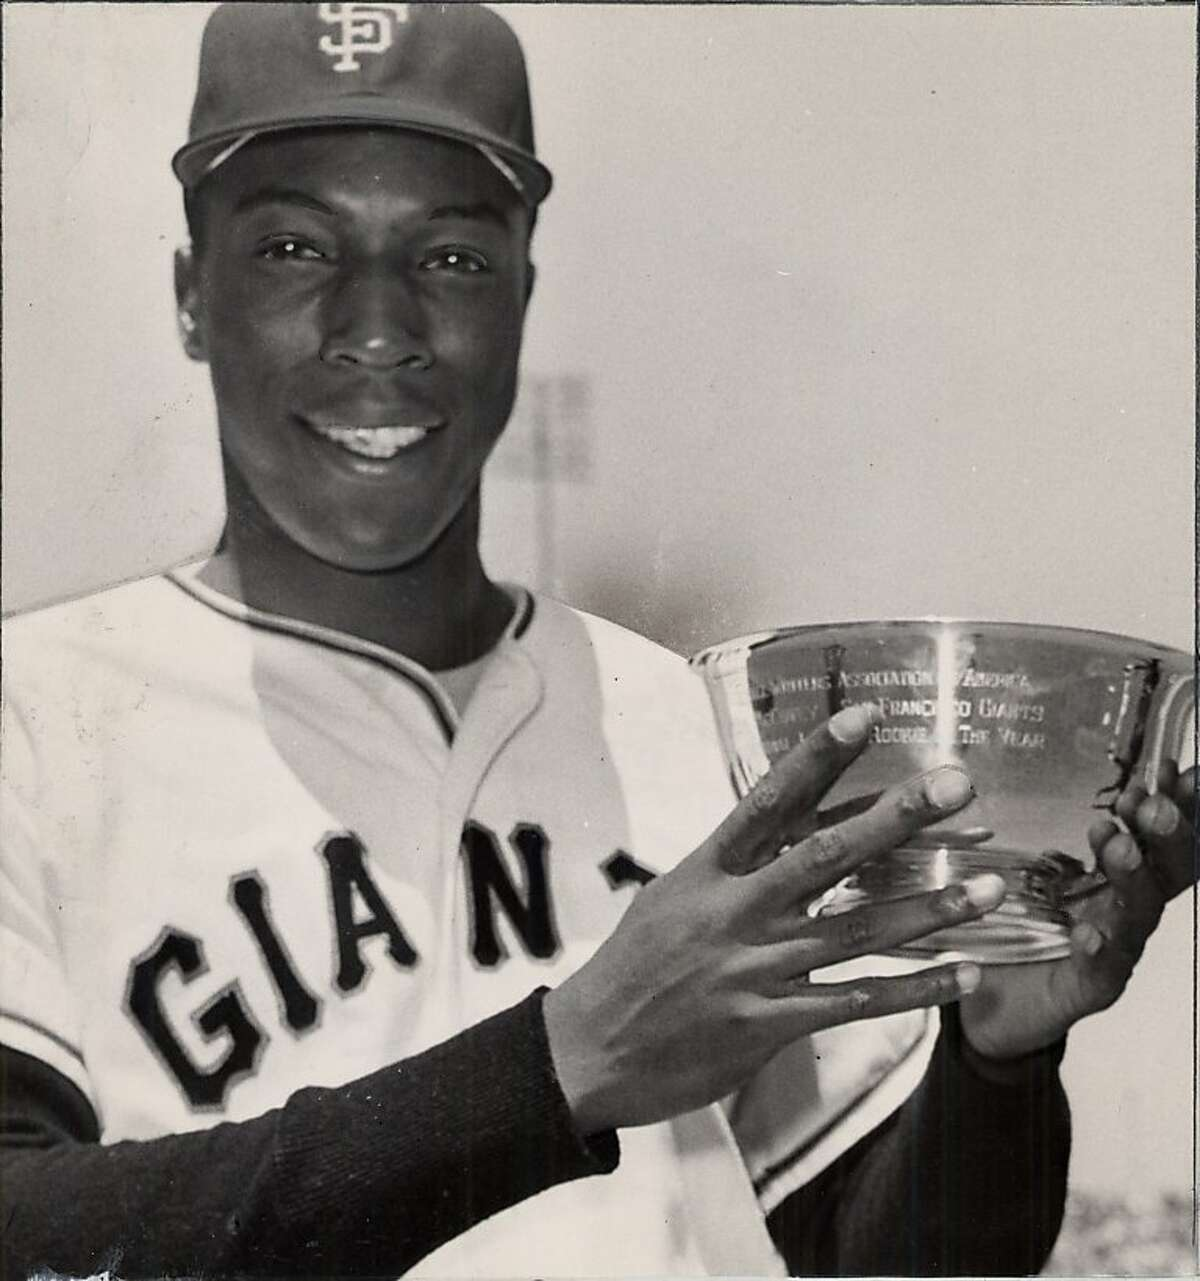 The legendary Willie McCovey of San Francisco Giants in 1960.